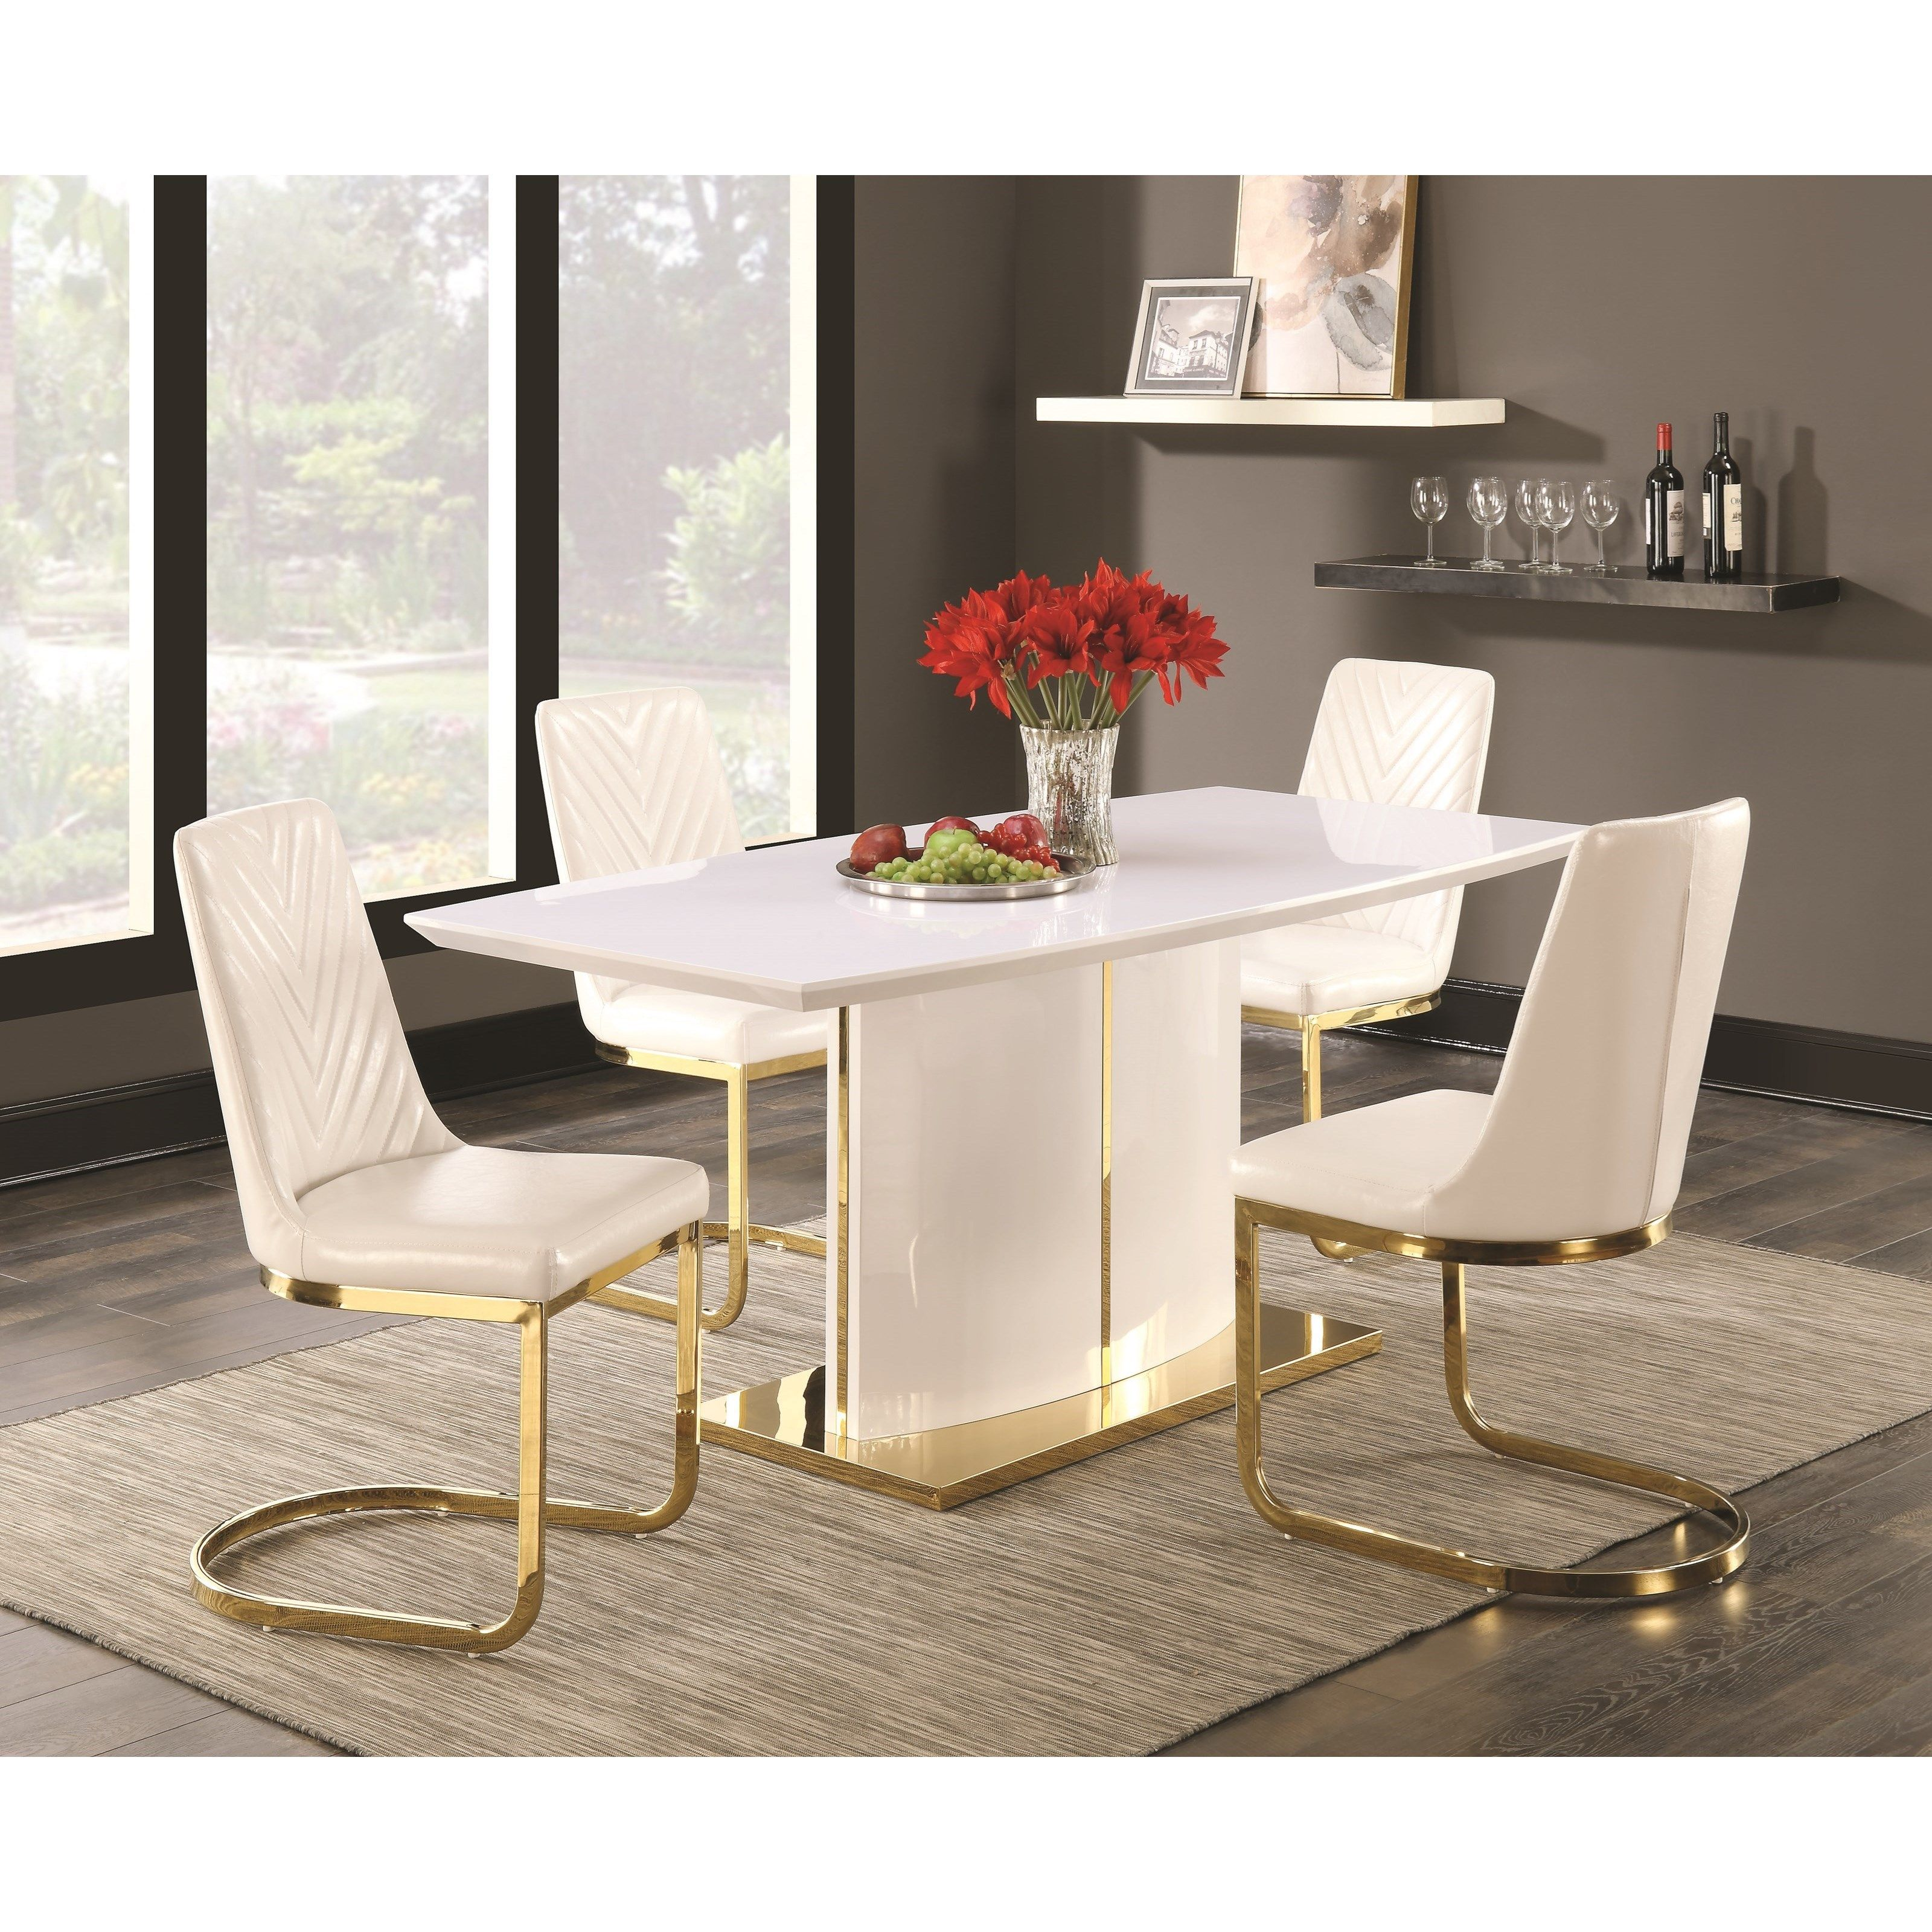 Pin By Stephanie On Home Decor White Dining Table Dining Room